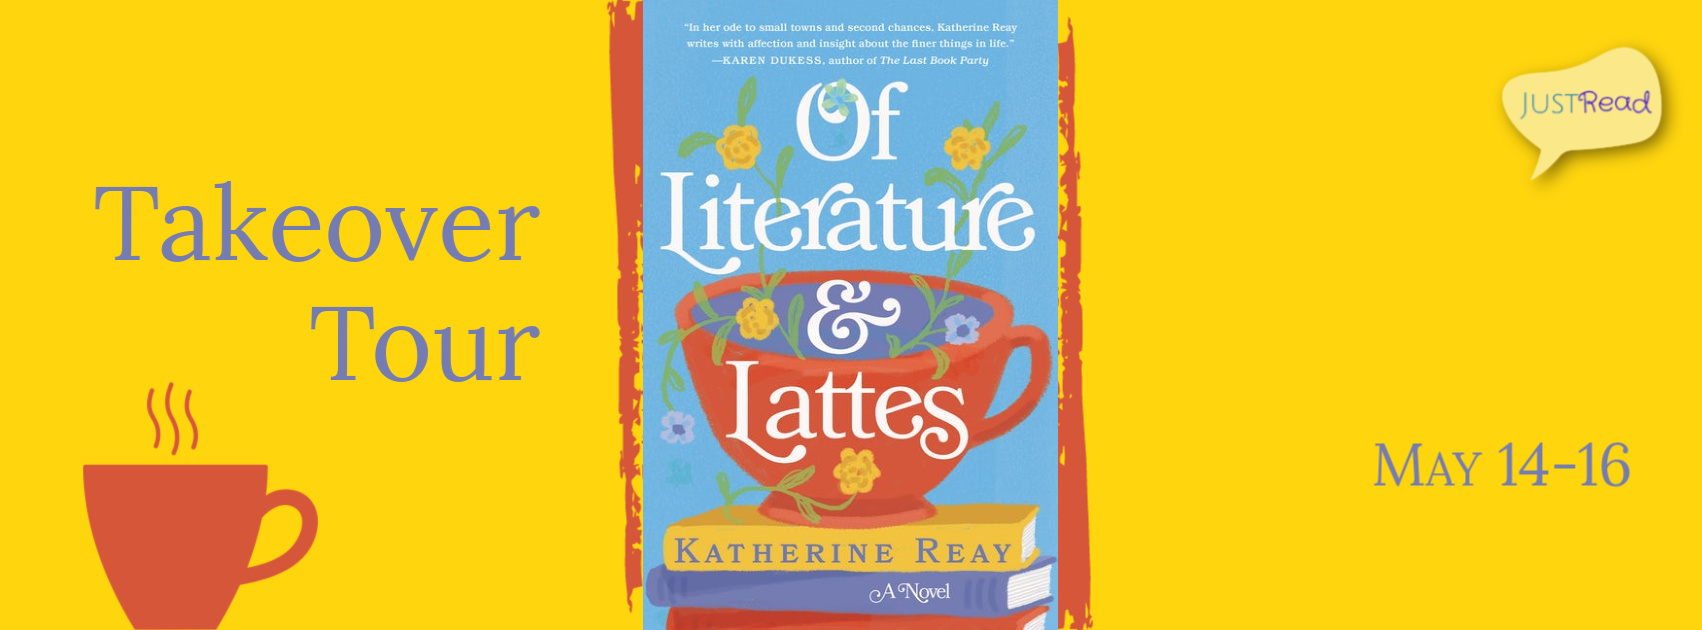 Welcome to the Of Literature and Lattes Takeover Tour!